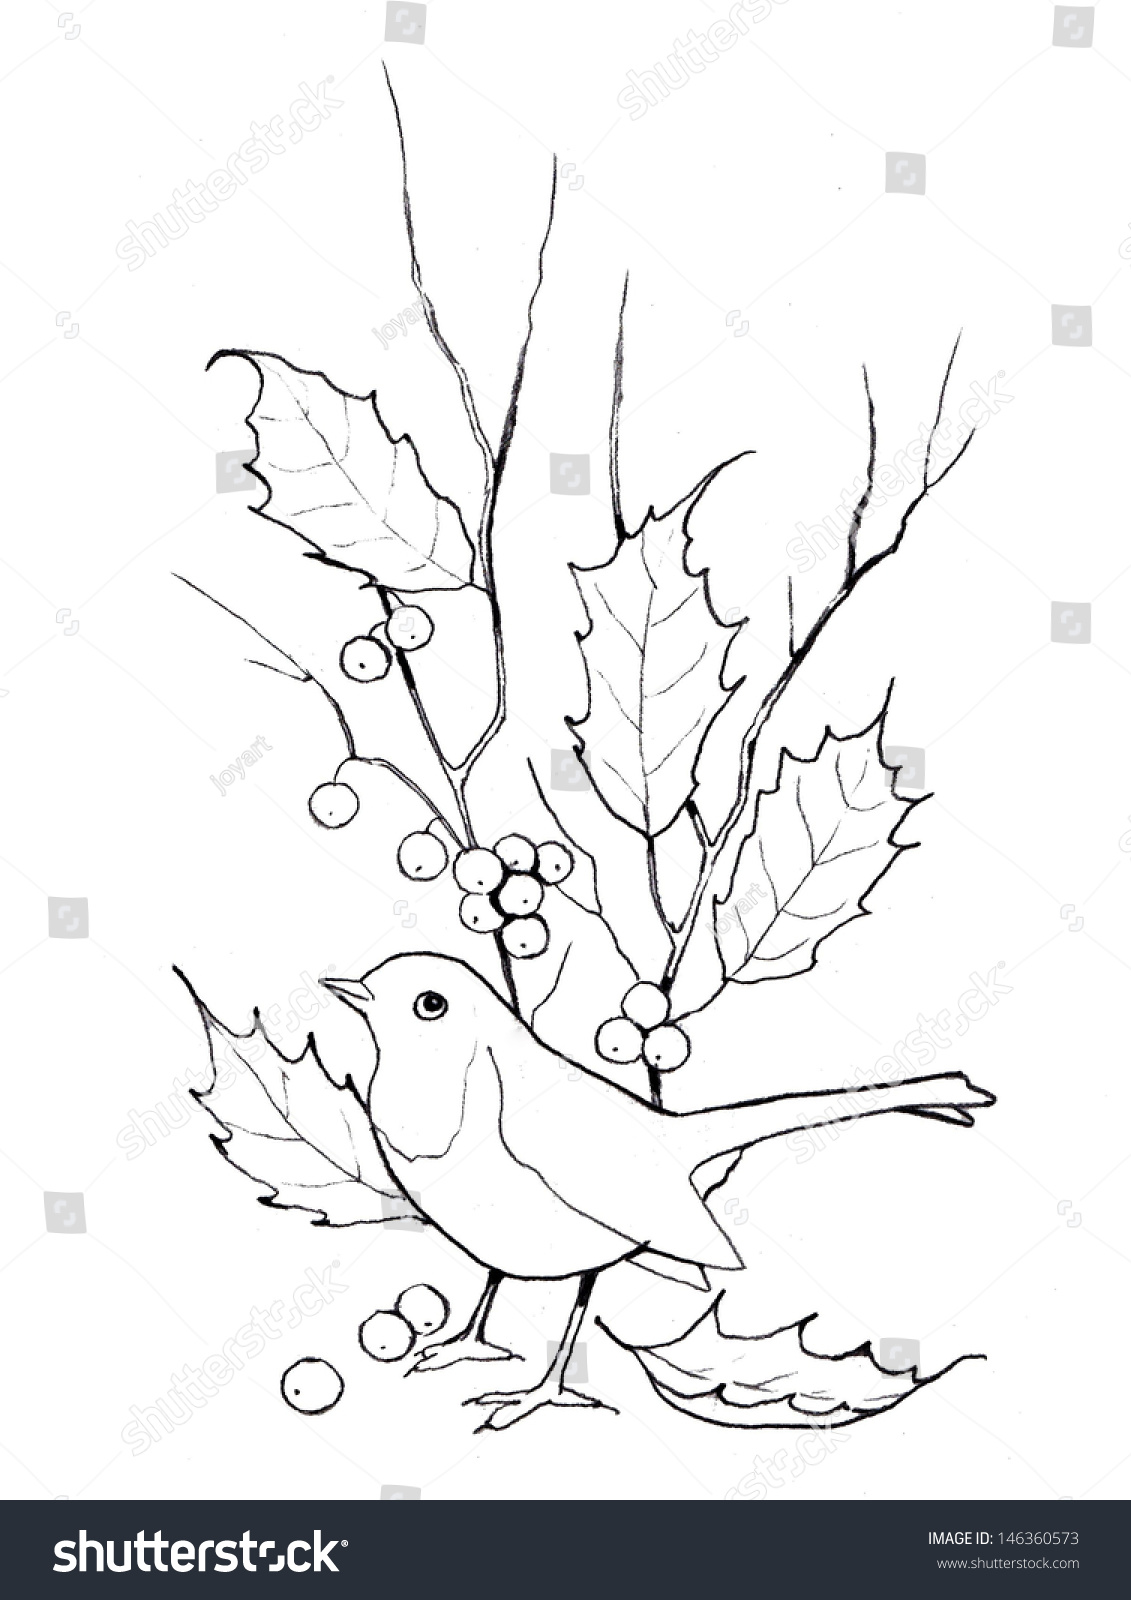 christmas holly bird freehand outline drawing stock illustration 146360573